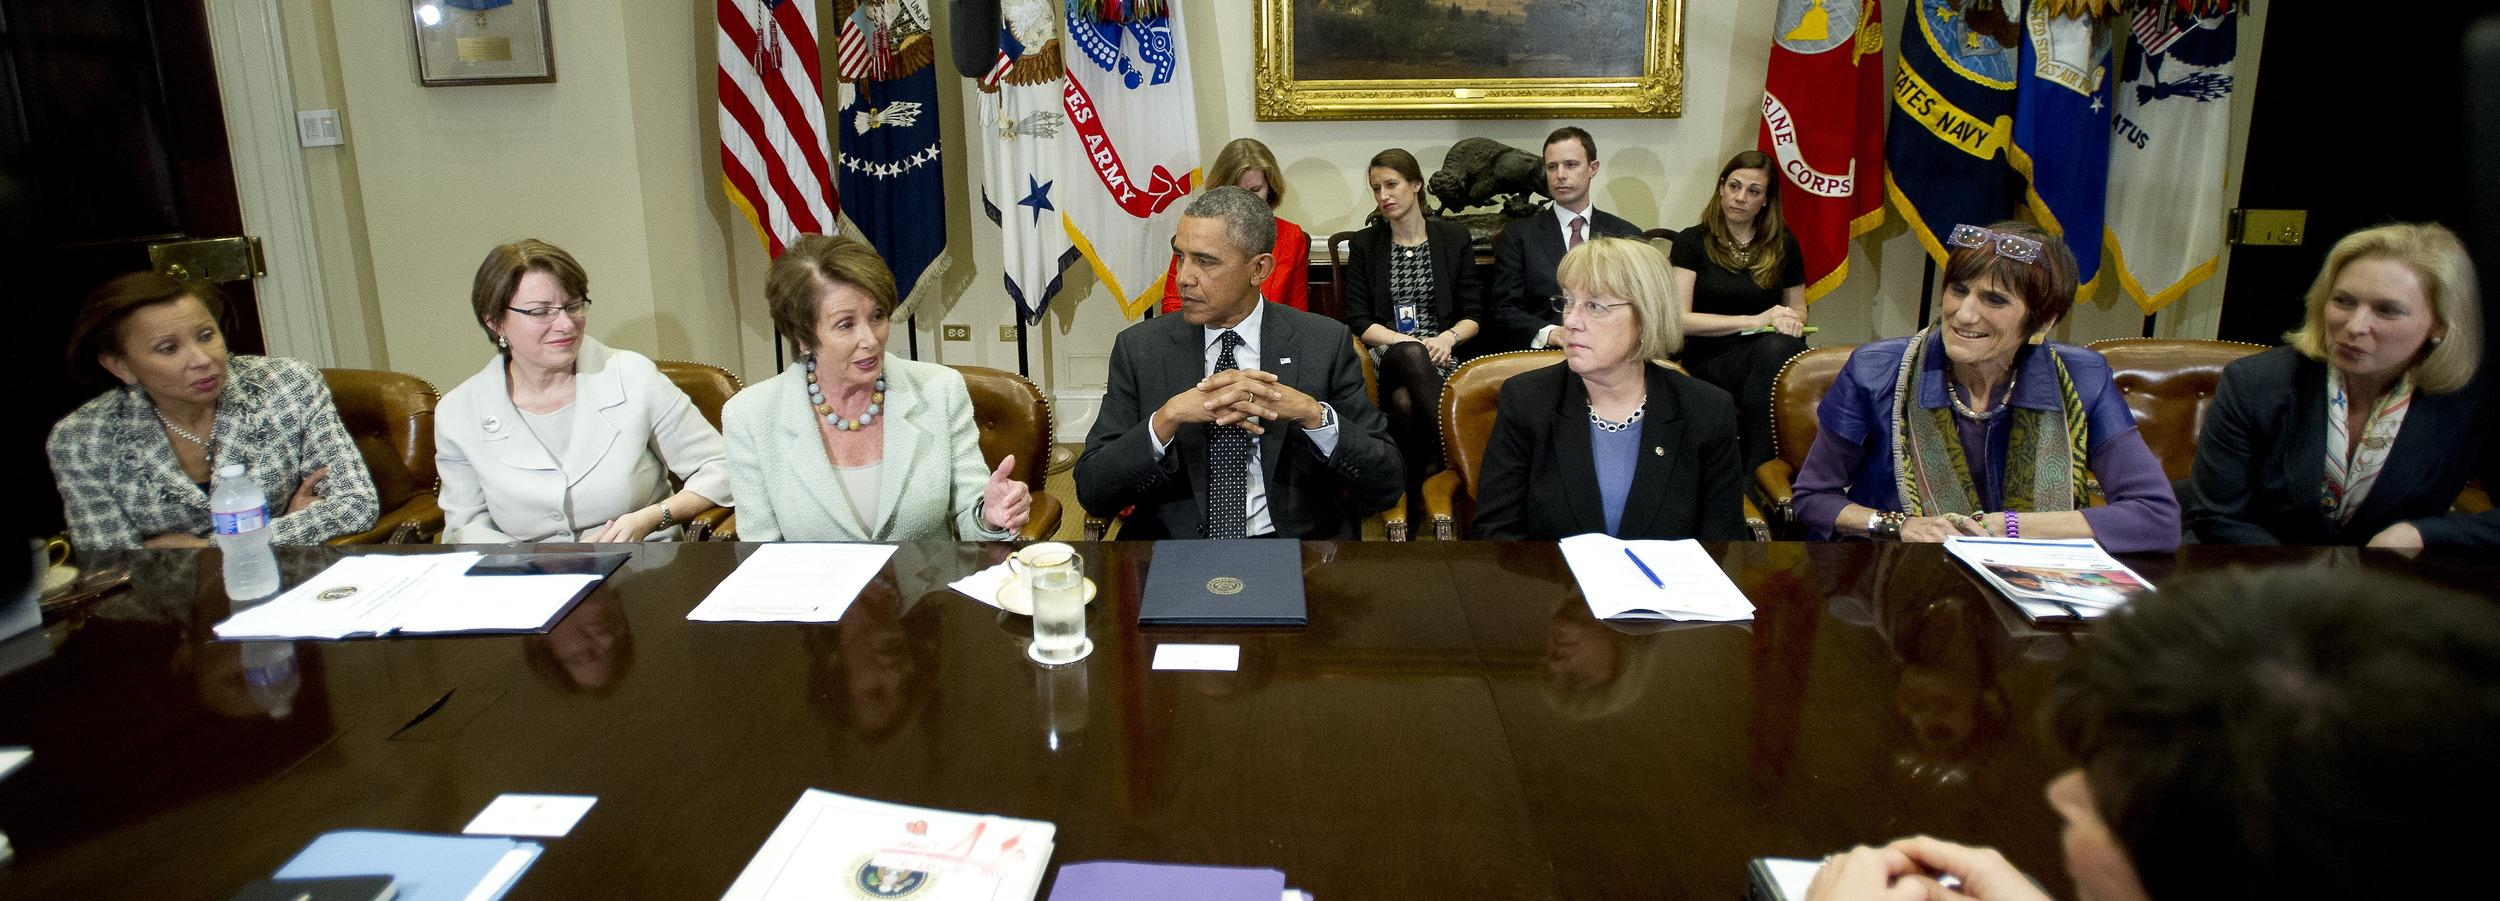 Image: Obama Meets Women Members of Congress